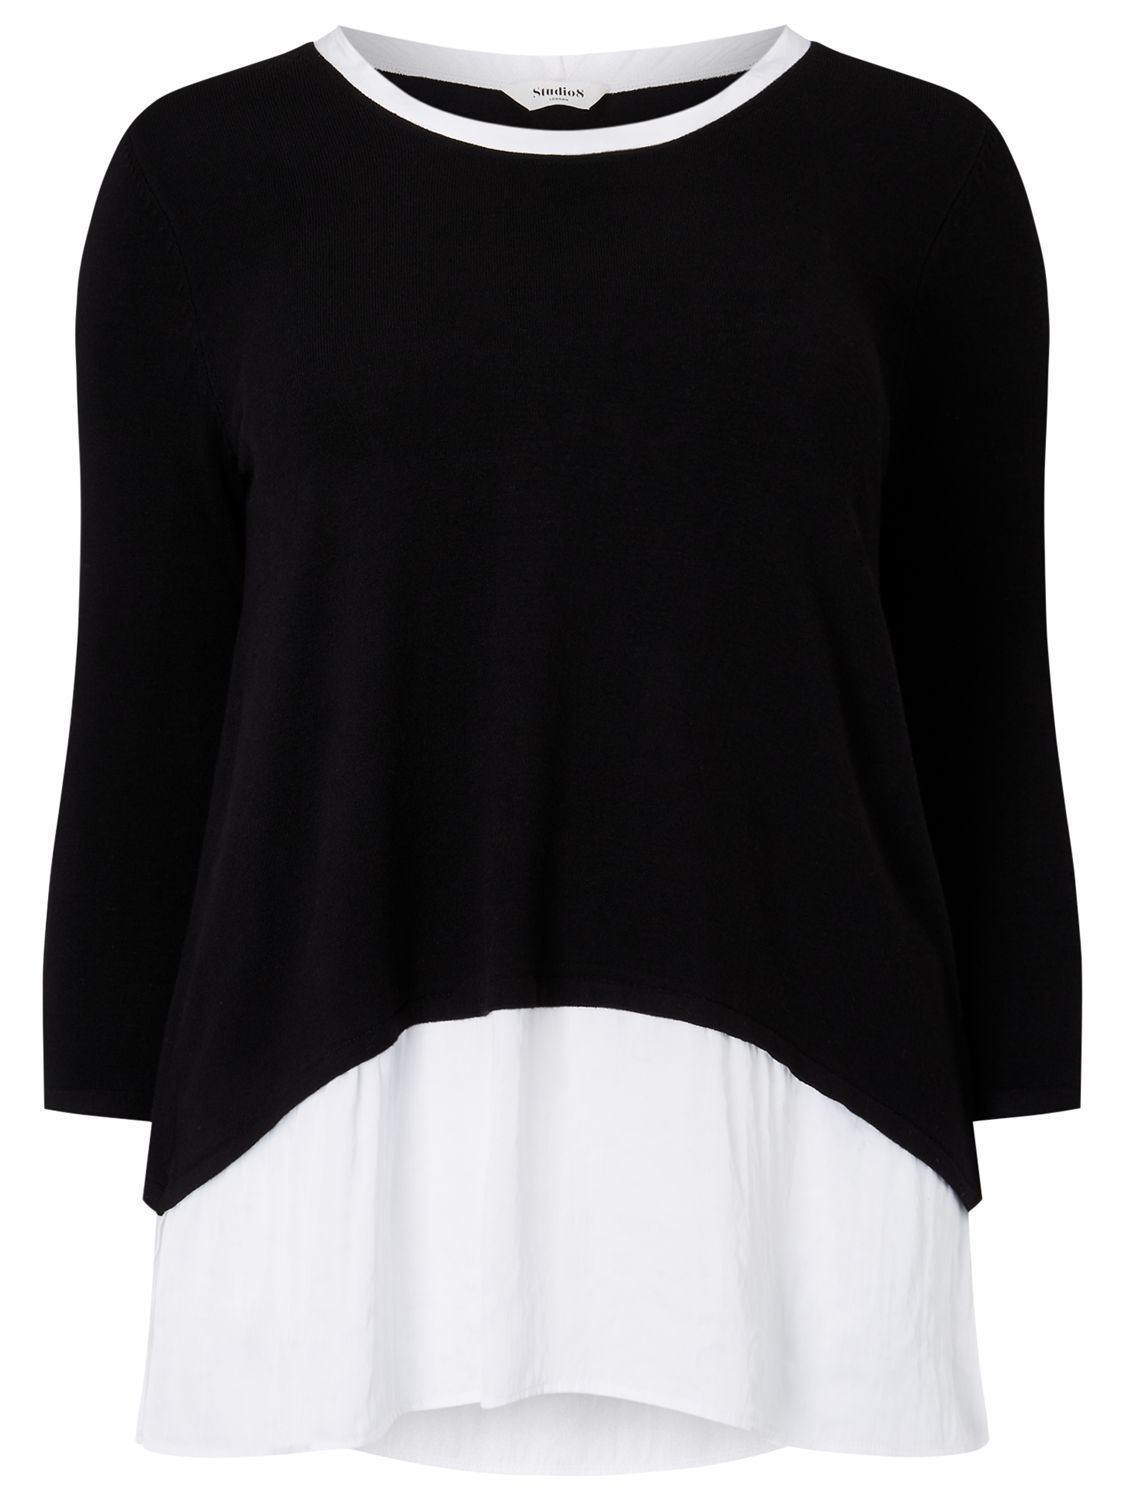 Studio 8 Studio 8 Kassandra Top, Black/White